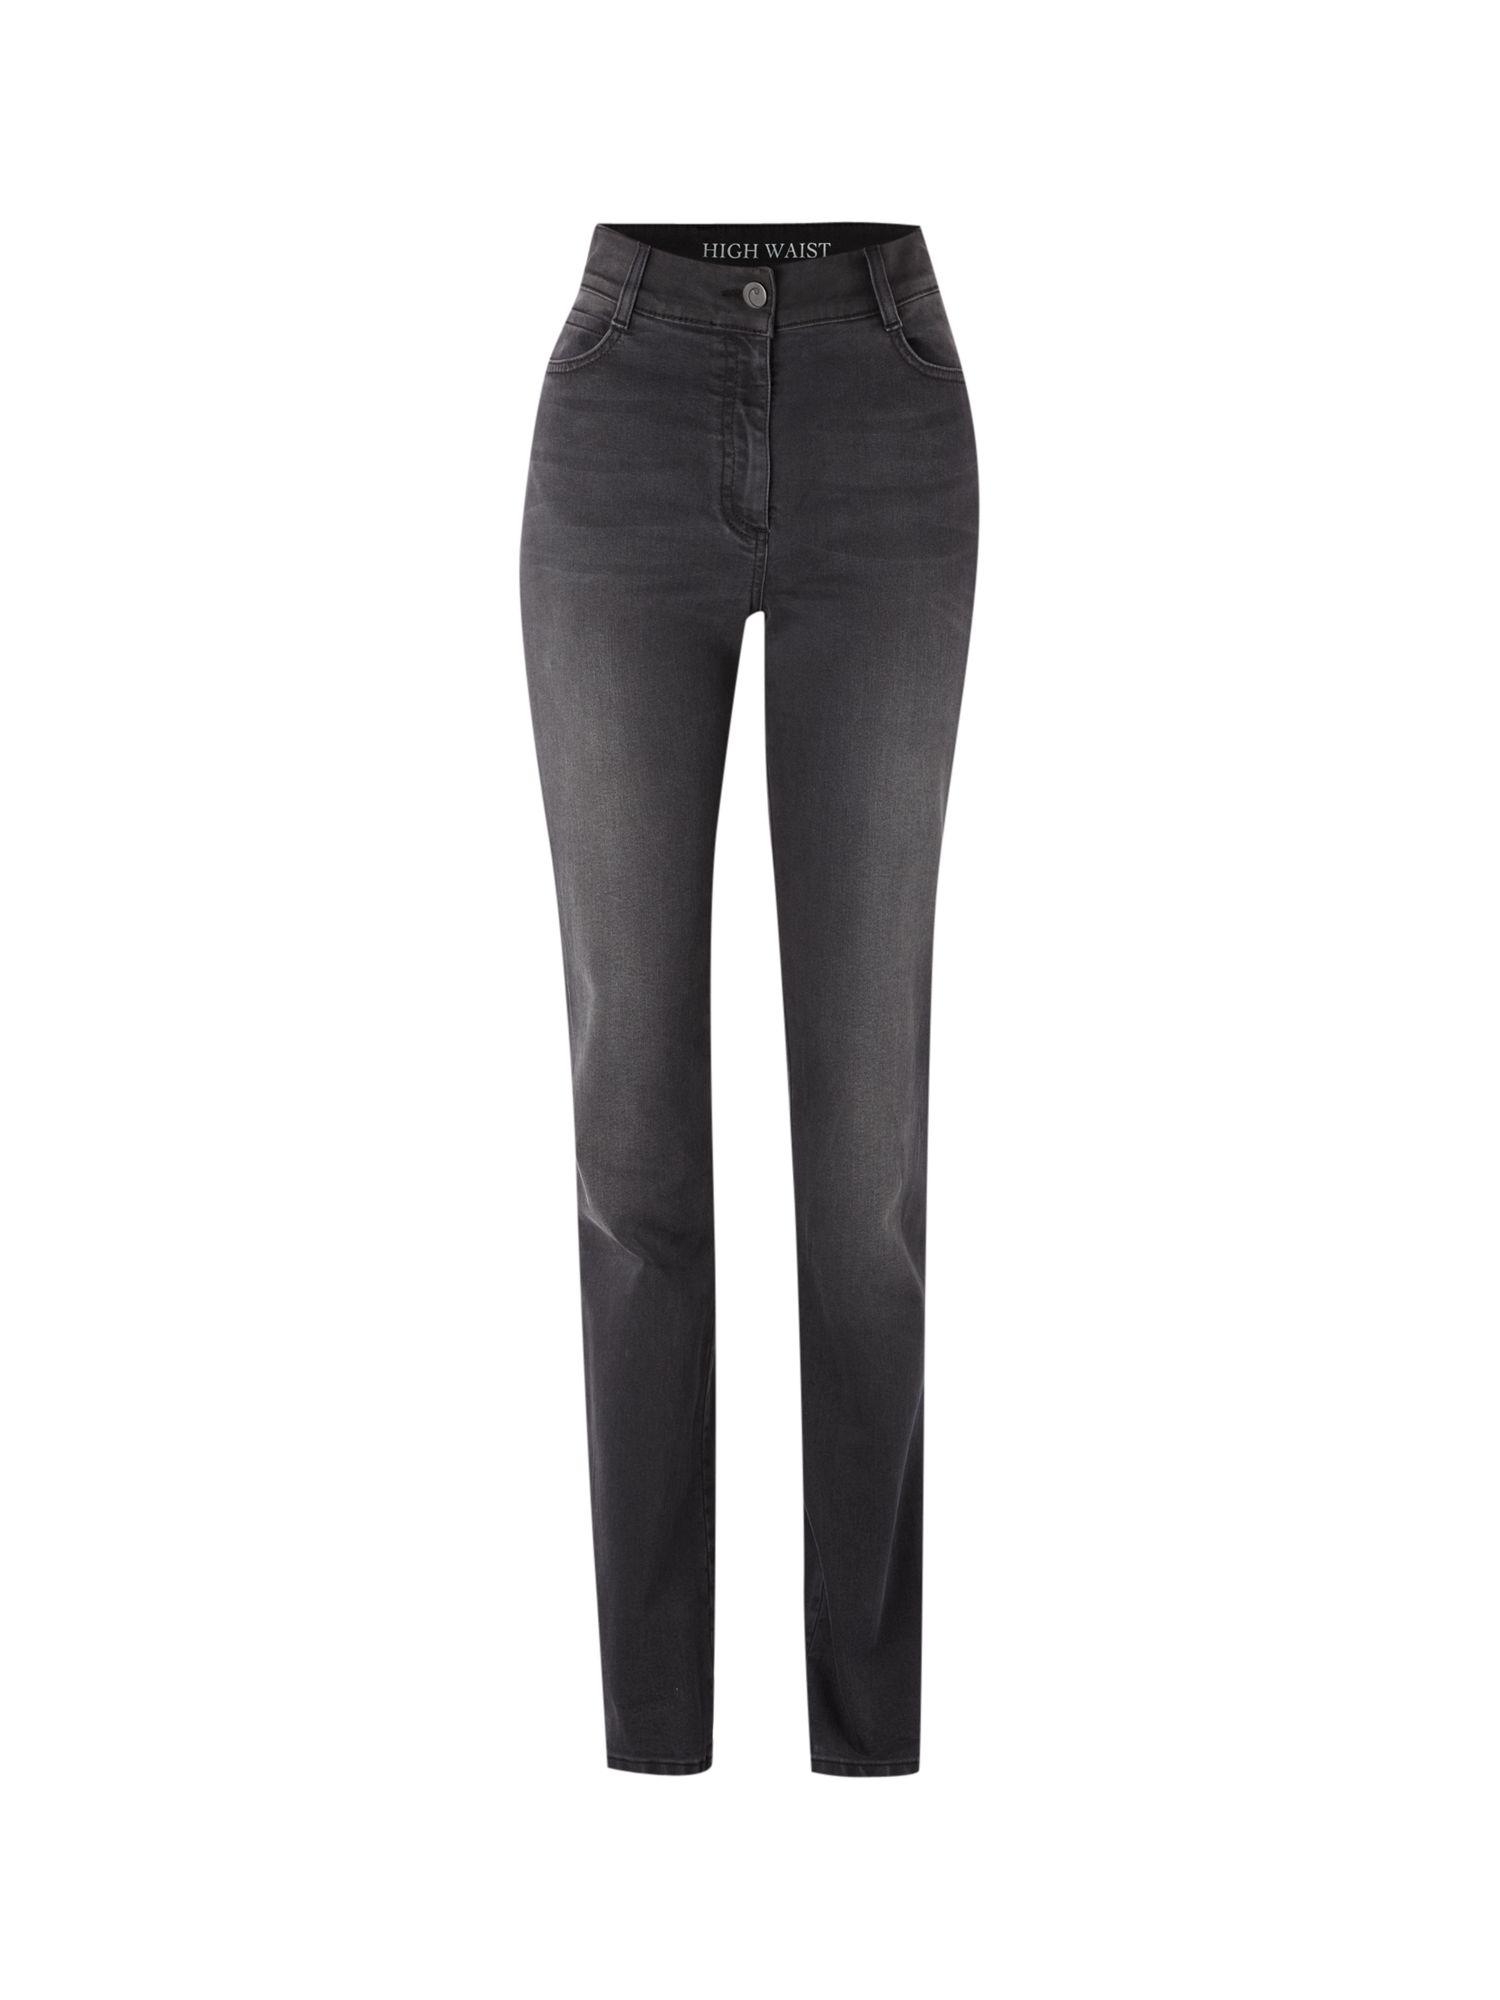 The High Waist Skinny Jean